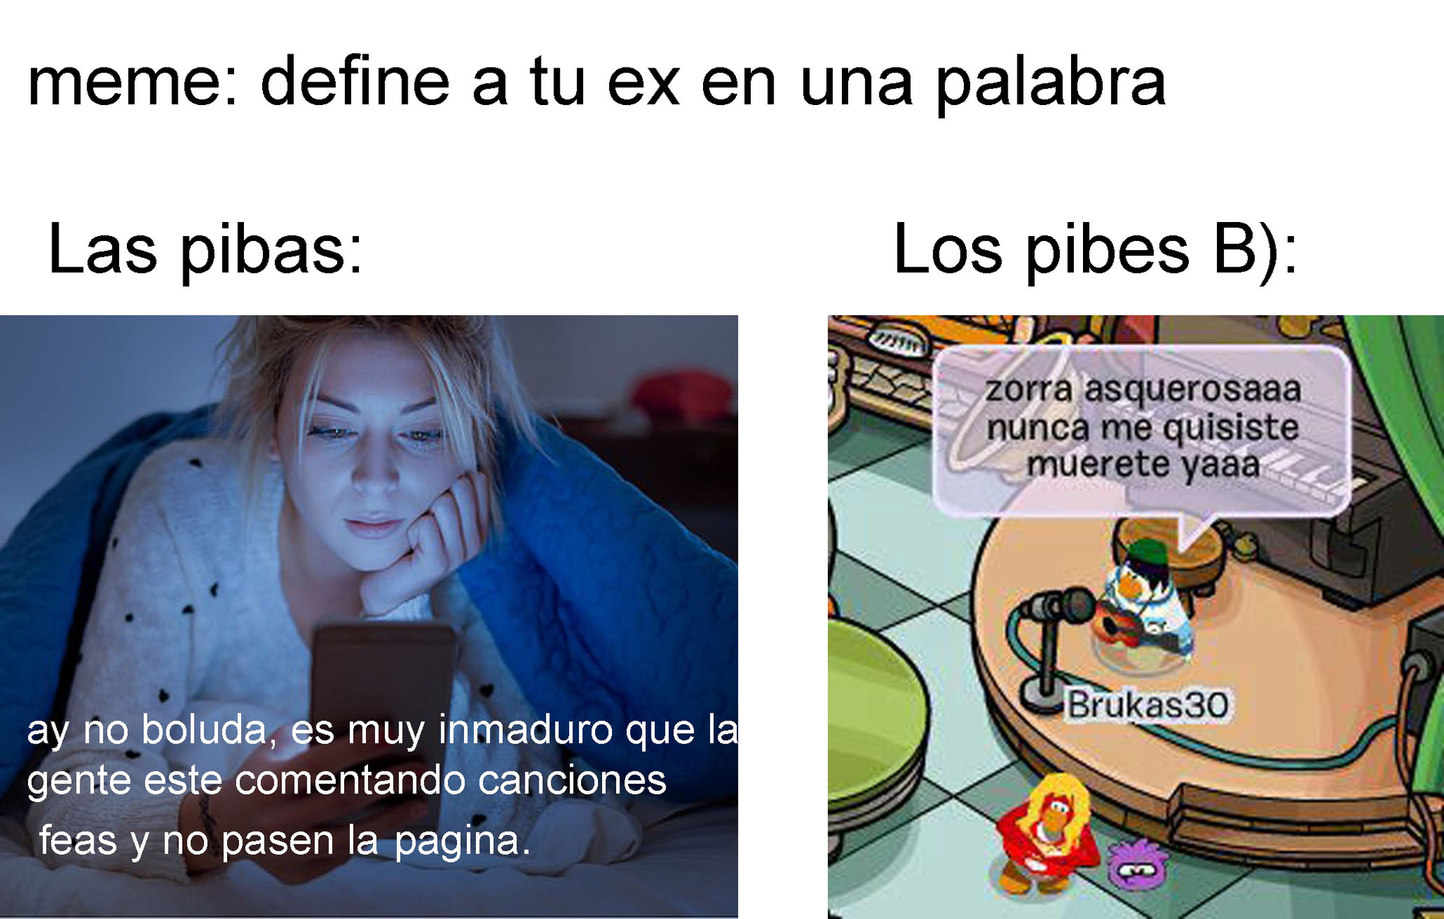 intento de meme